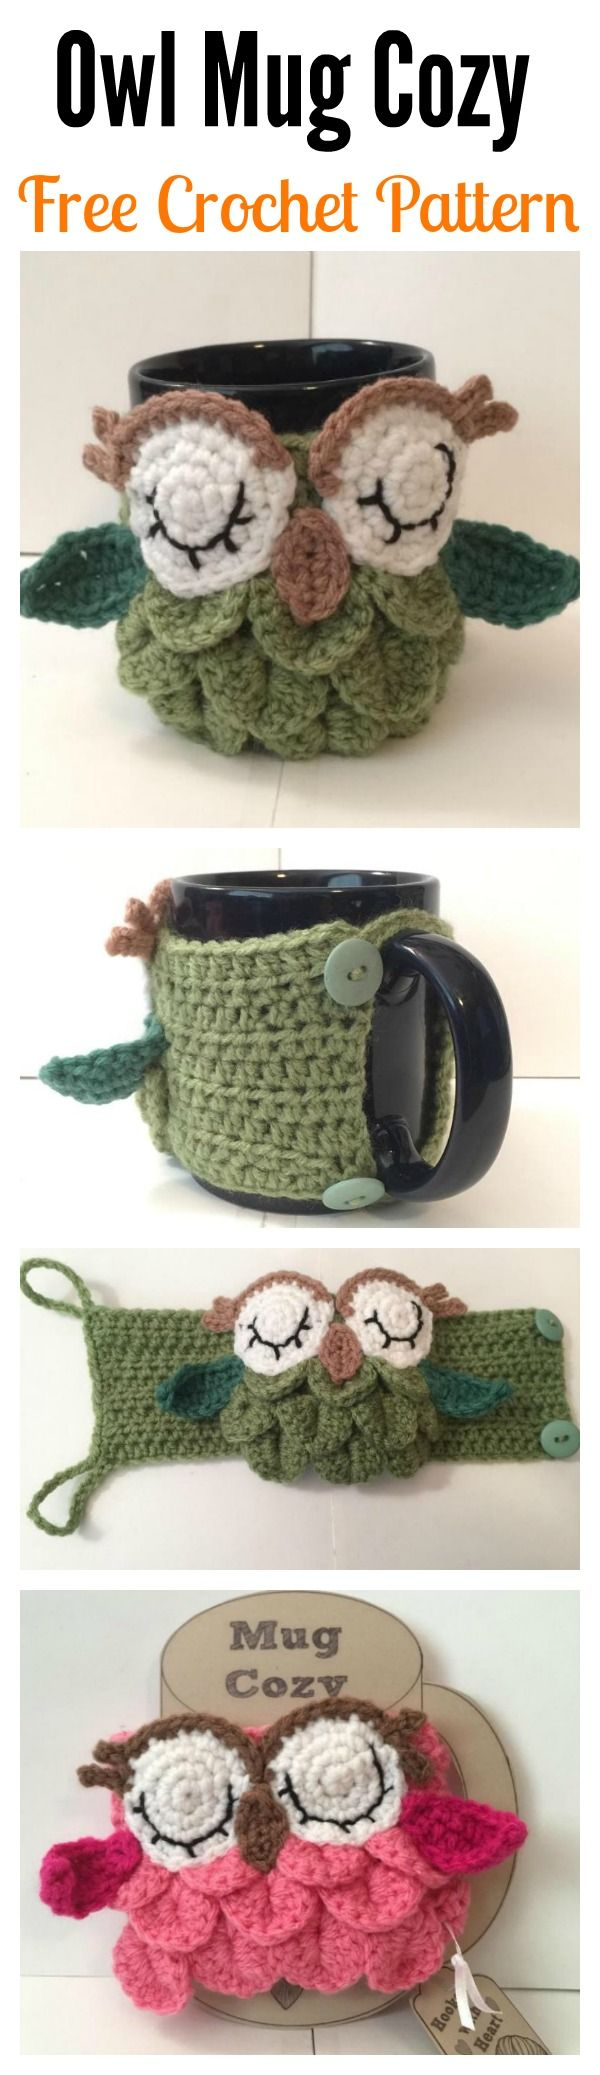 Crochet Owl Coffee/Tea Mug Cozy Free Pattern (this is the freaking cutest thing ever!!! So impractical though )